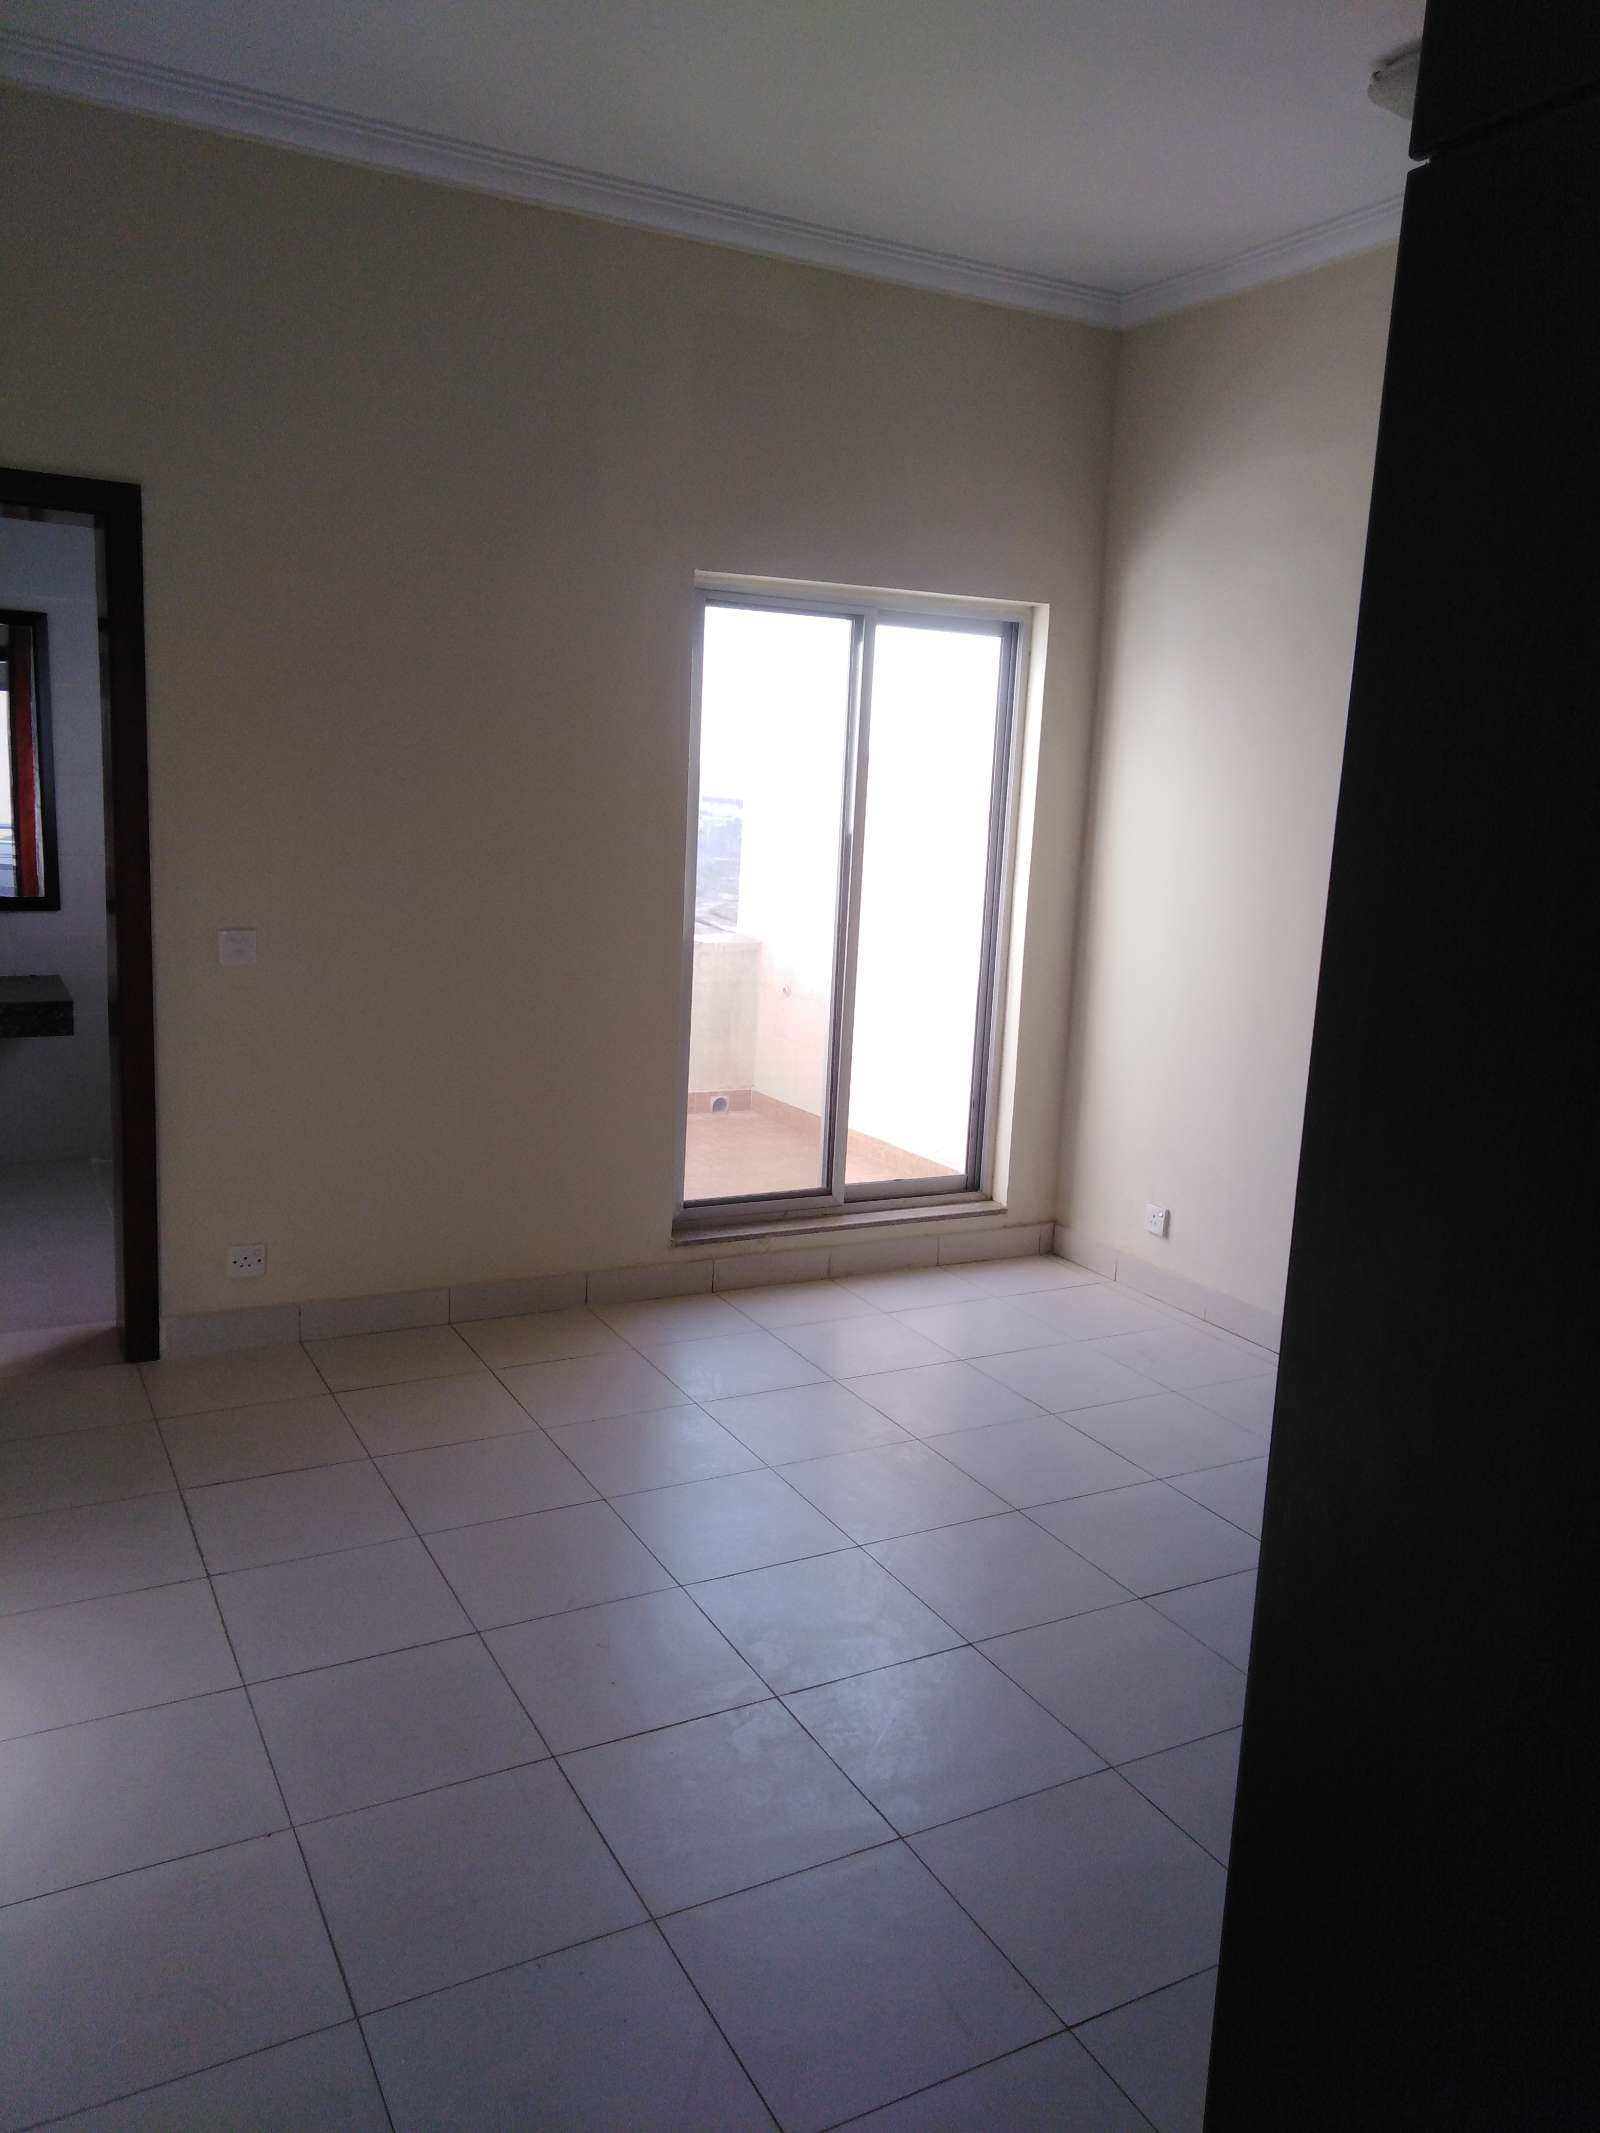 8 Marla House for Rent Double Storey DHA Home DHA Valley